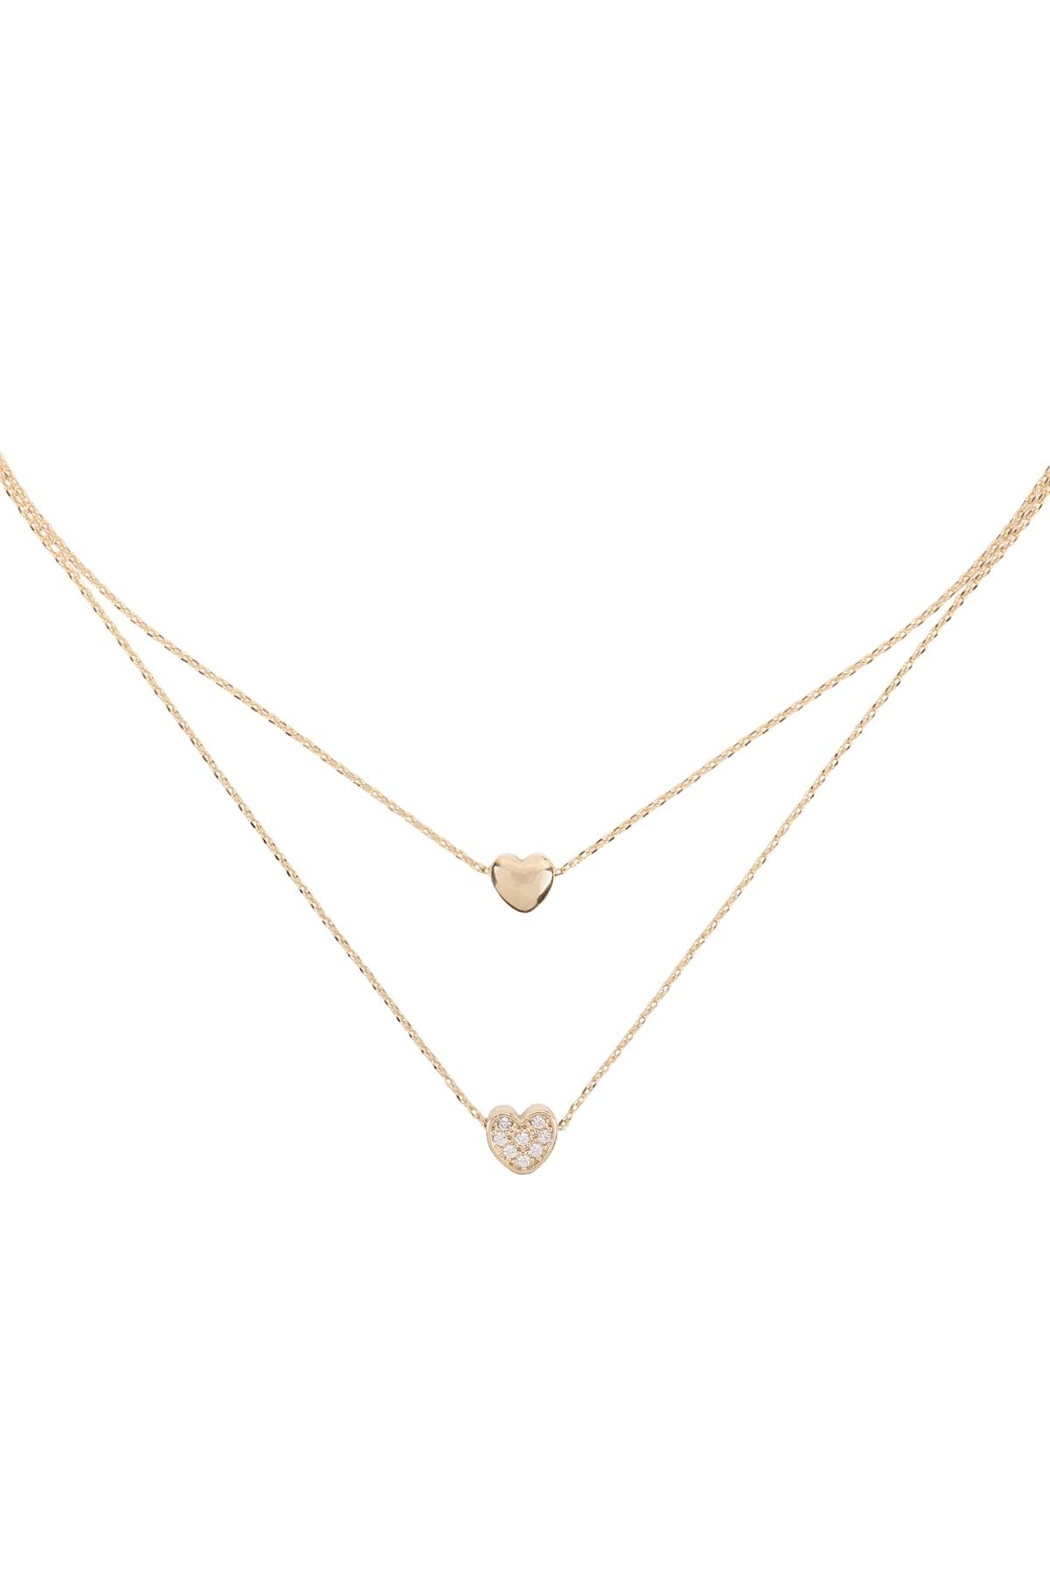 Riah Fashion 2 Layered Pave Cubic Heart Necklace - Main Image